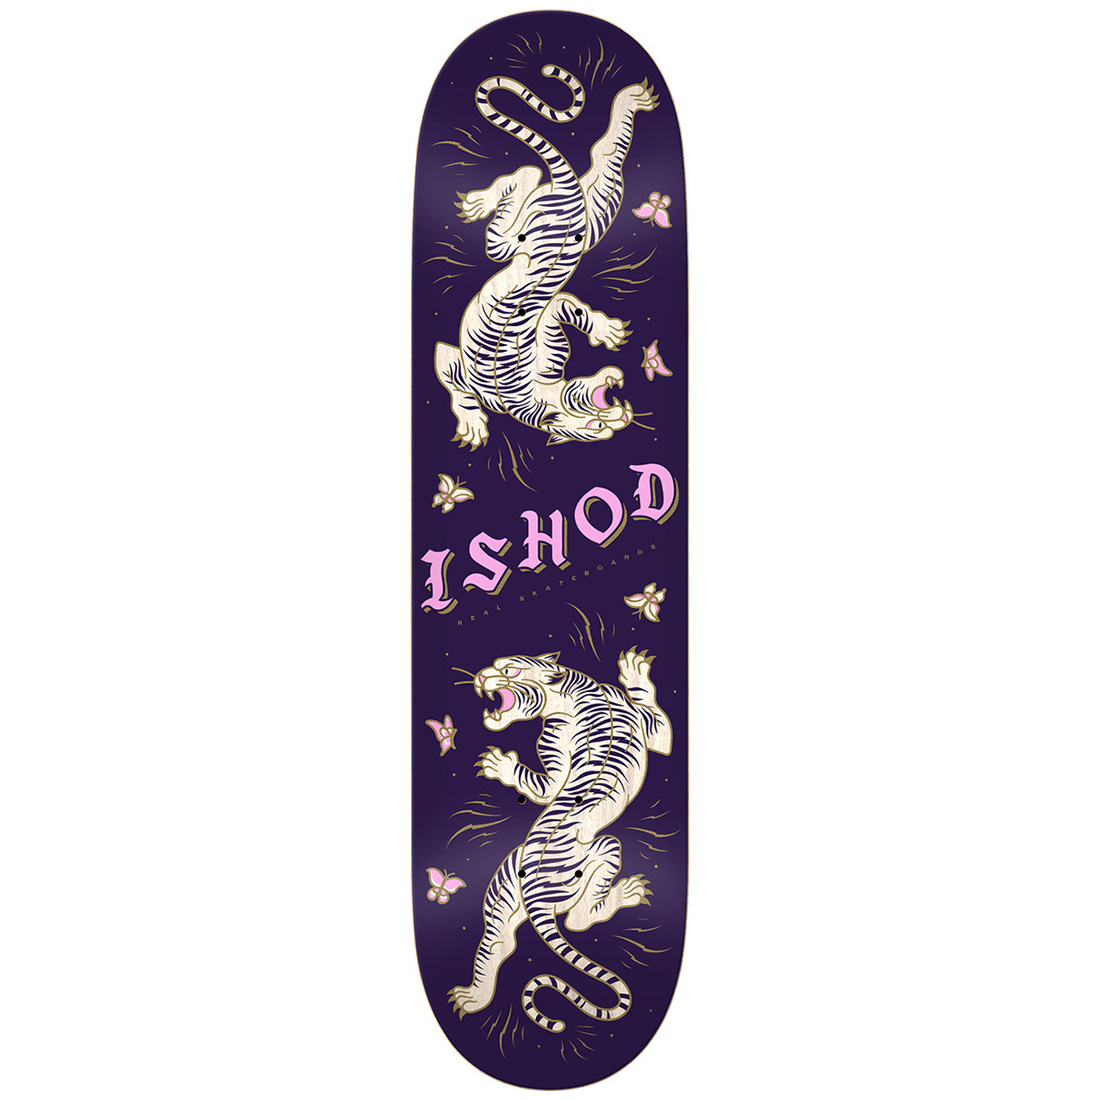 "ДЕКА REAL ISHOD CAT SCRATCH TT 8.0"" 2019"